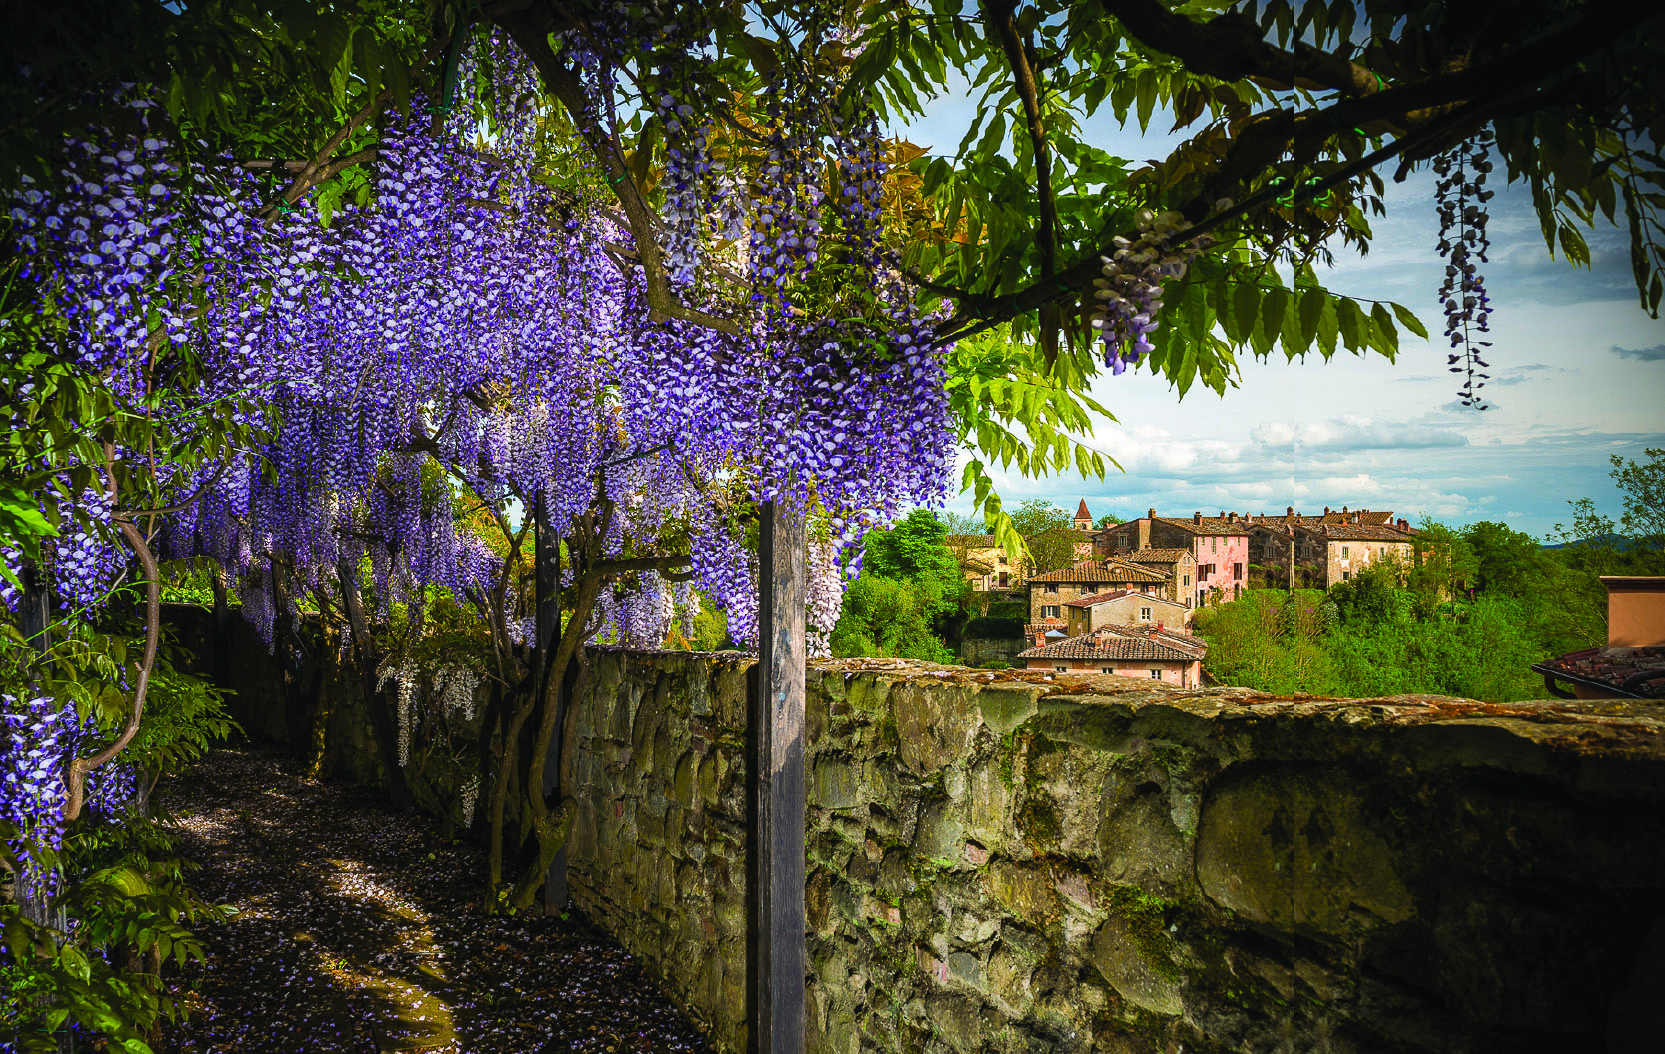 Ferragamo's Tuscan village: Encouraging the cycle of nature